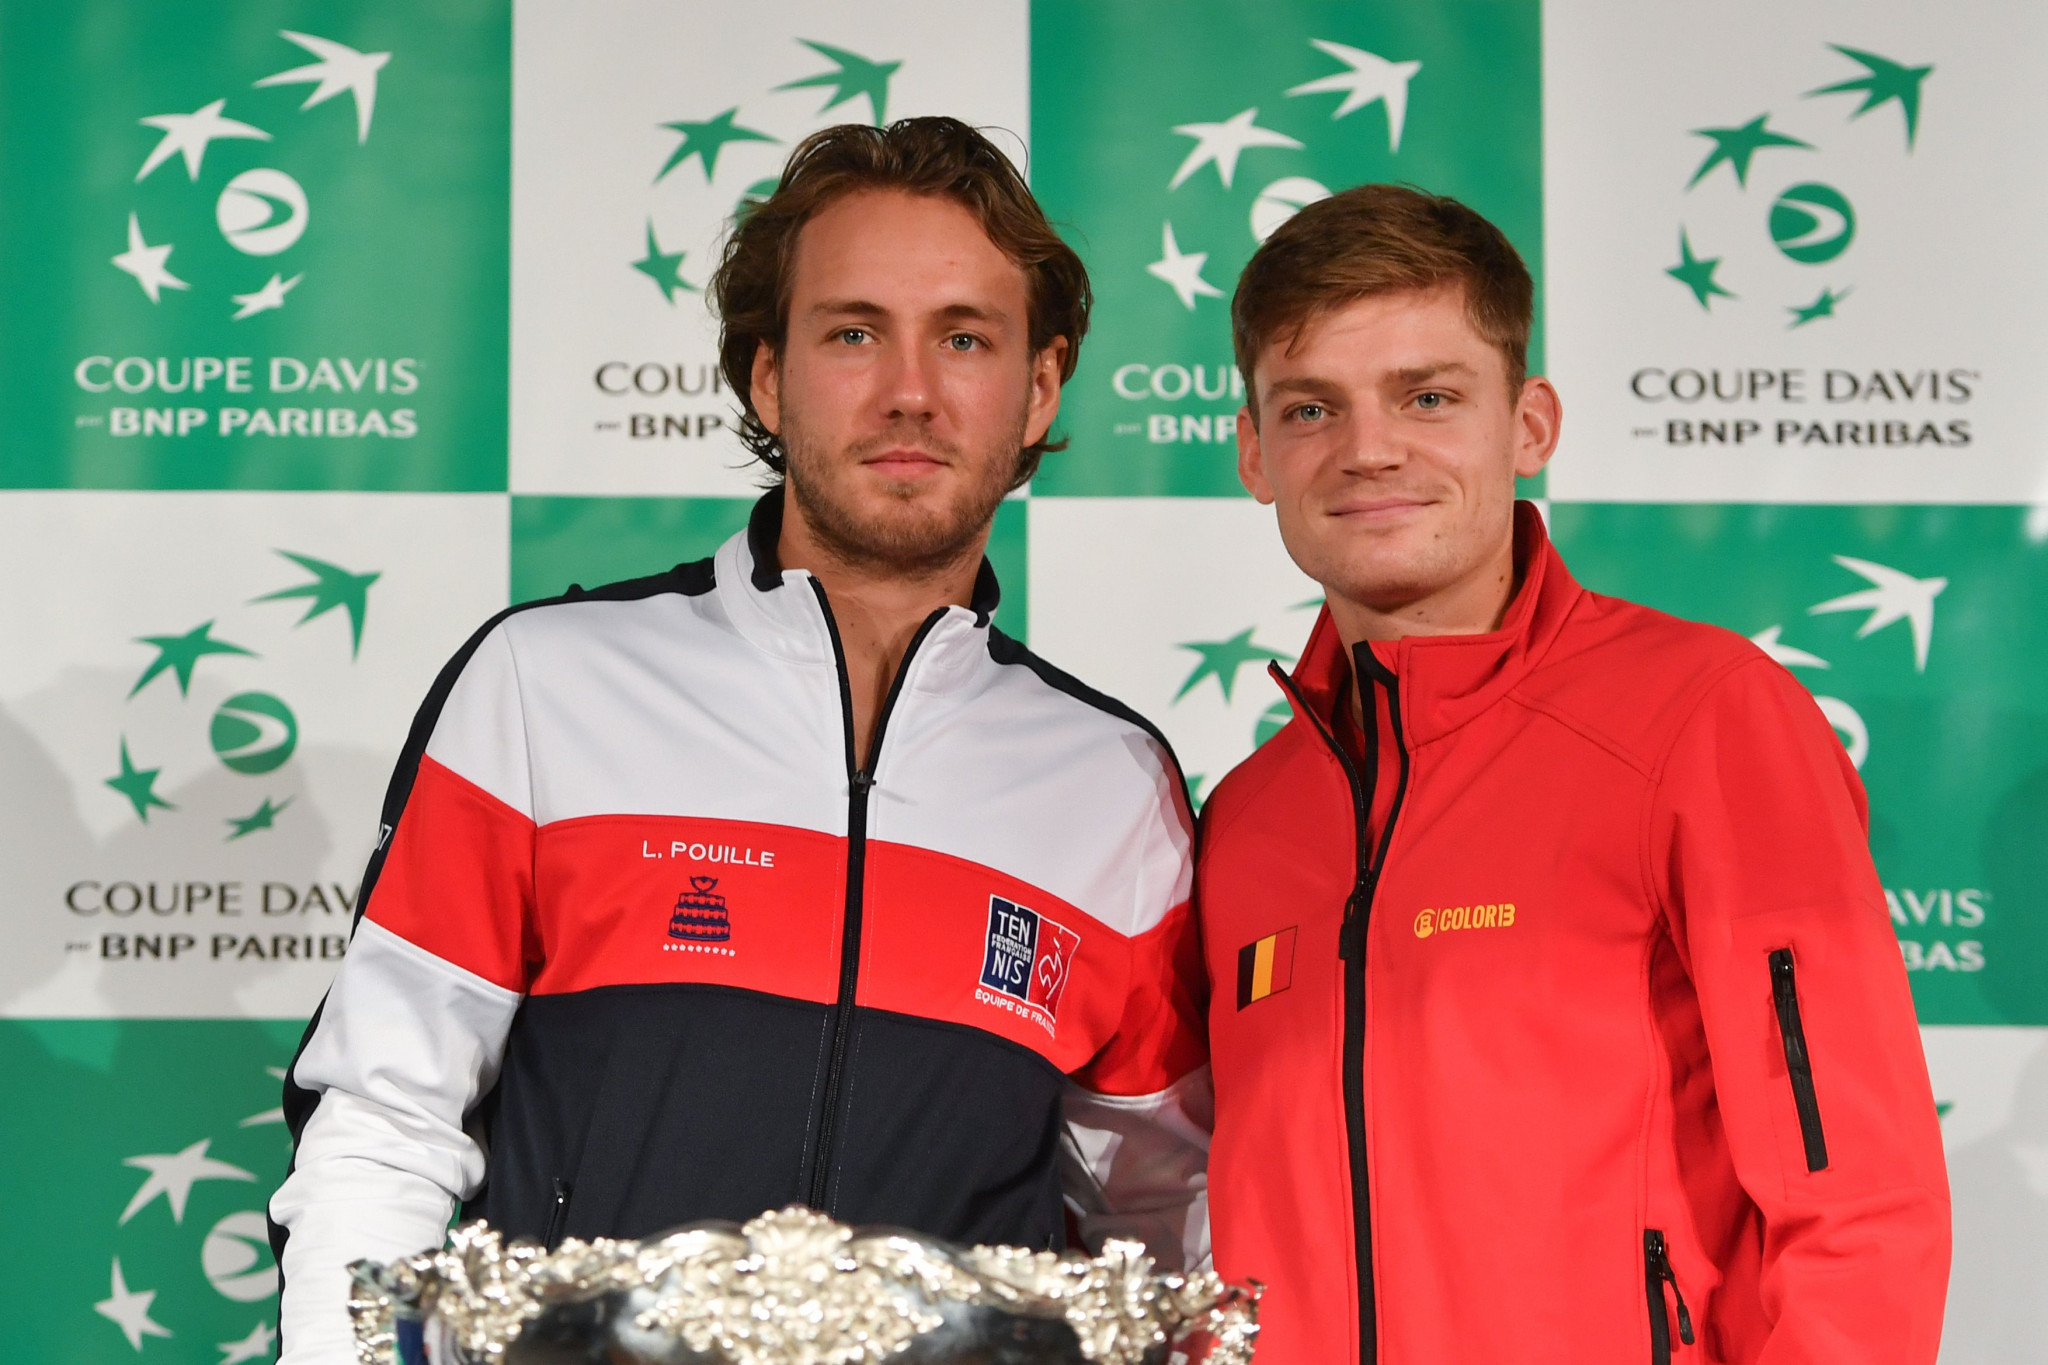 David Goffin and Lucas Pouille will put their friendship to one side when they kick off the 2017 Davis Cup by BNP Paribas Final on Friday ©Getty Images